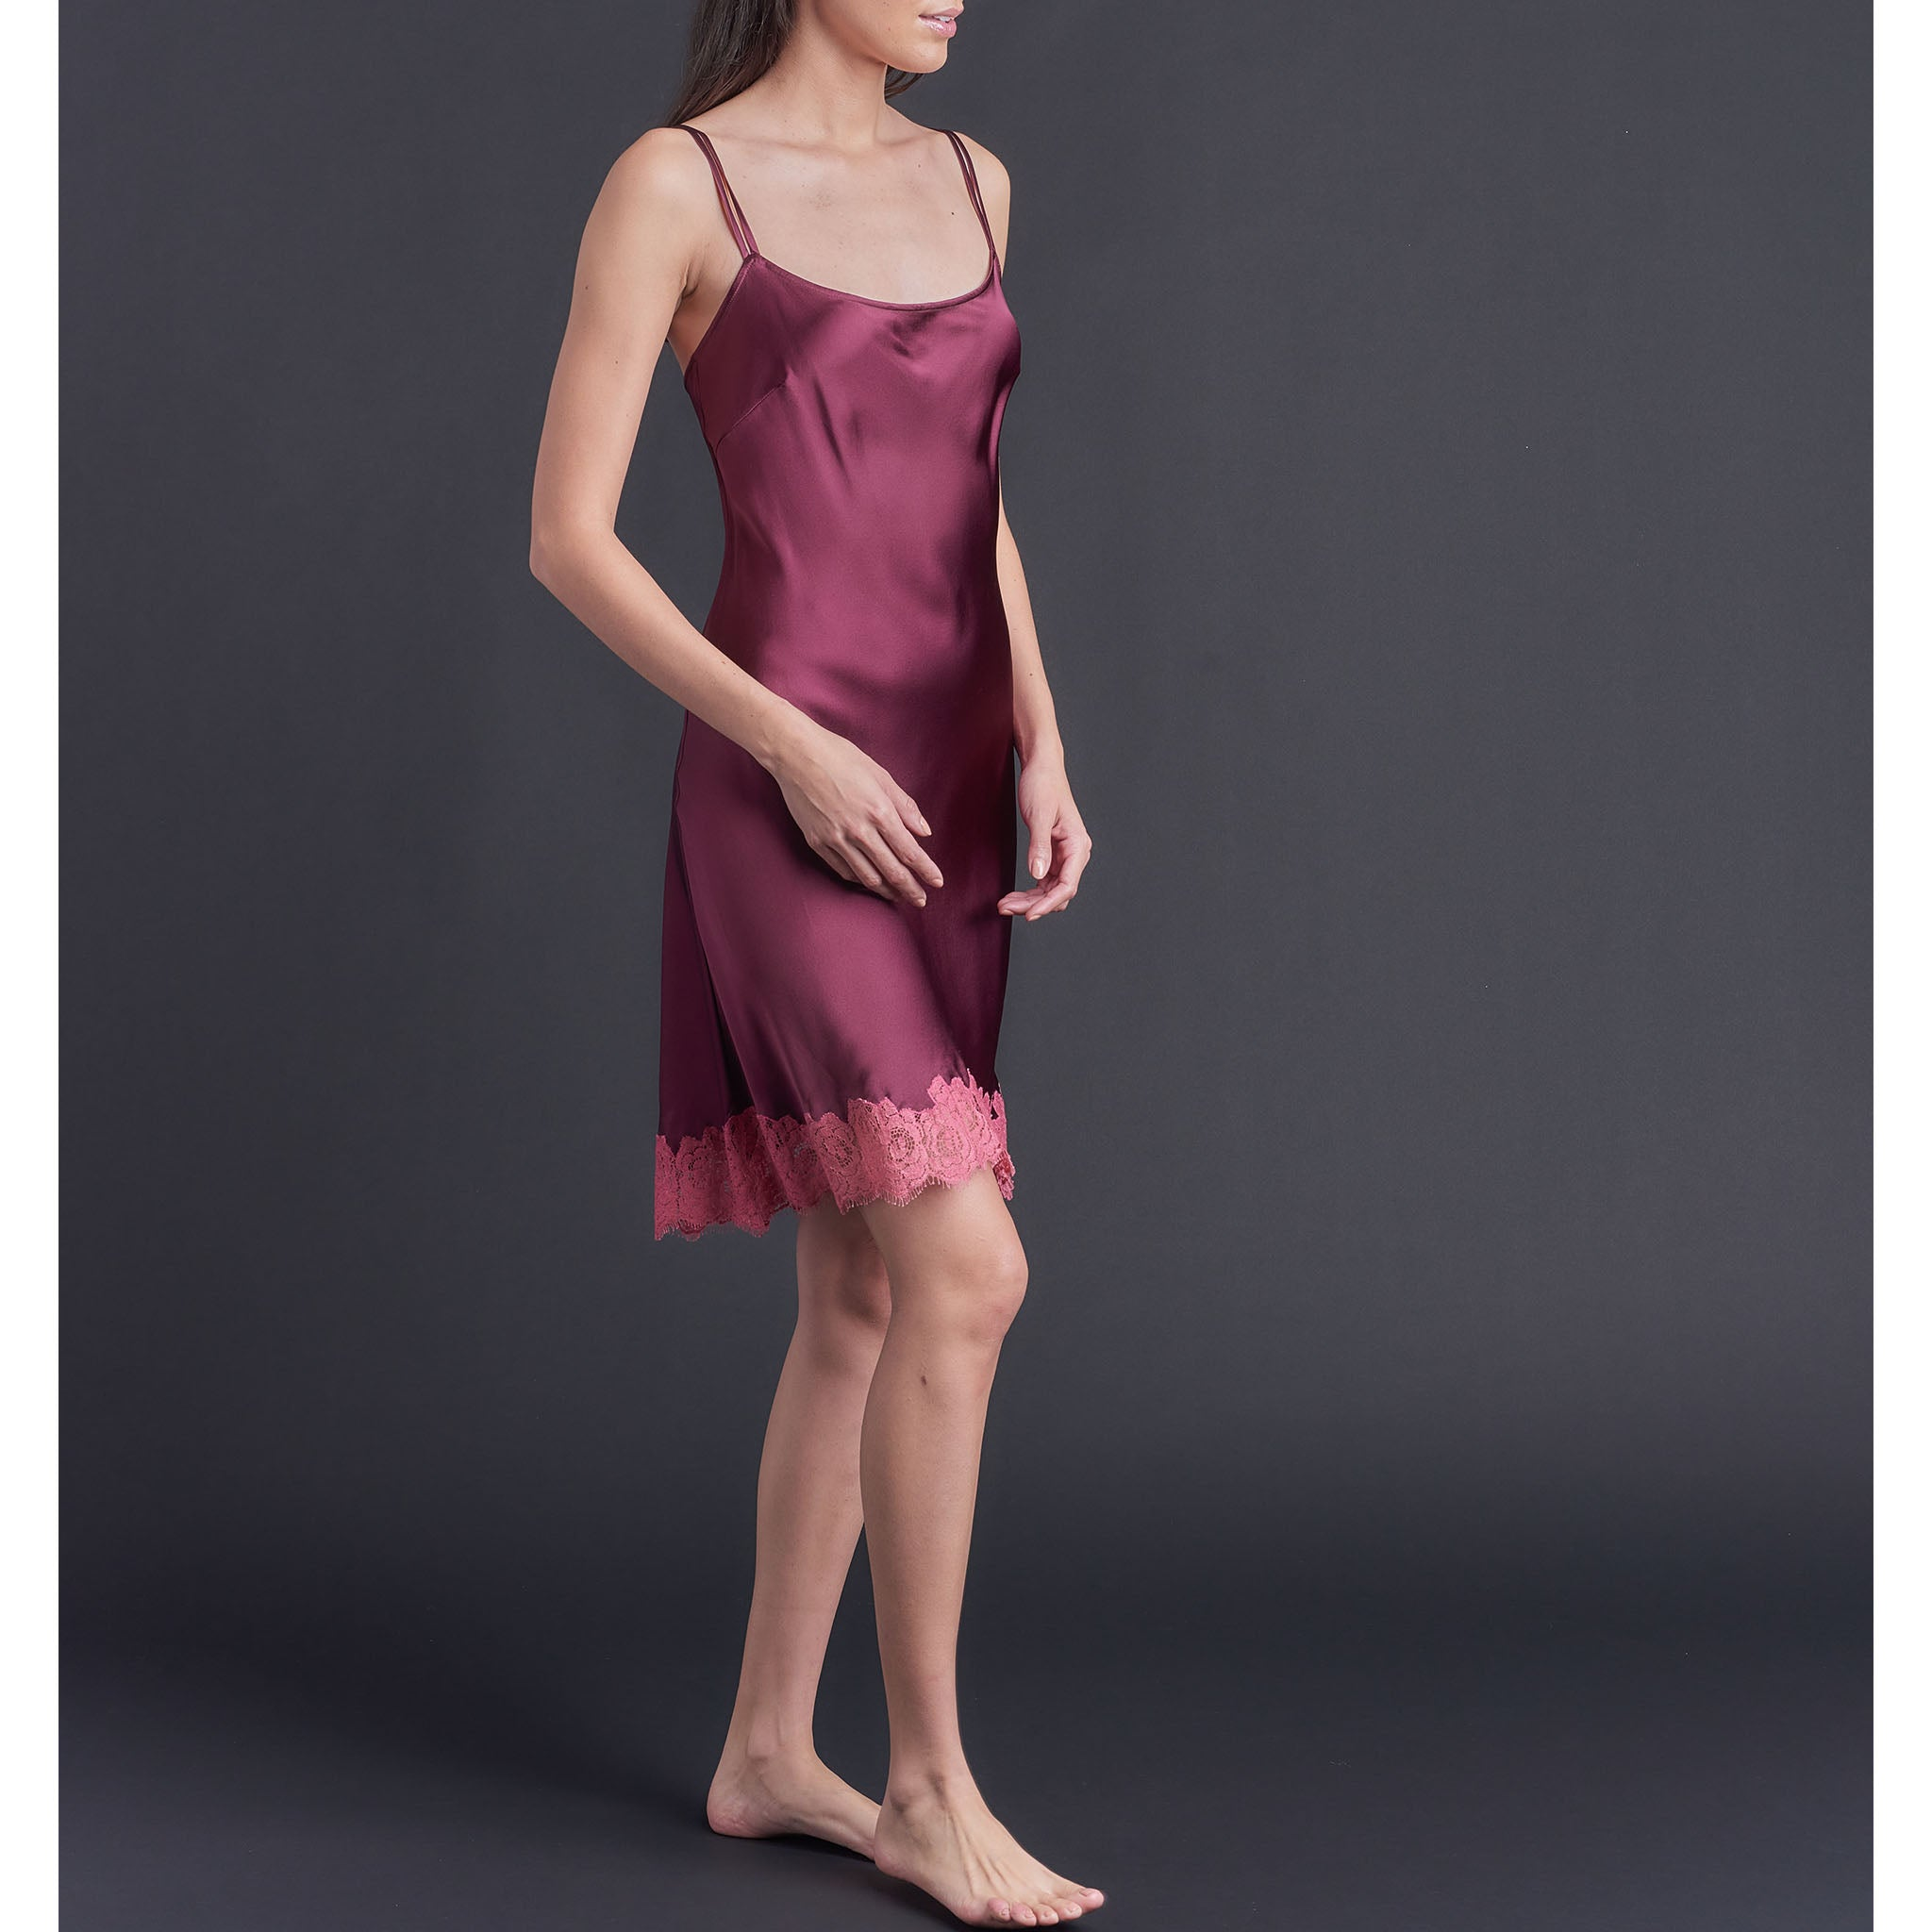 Athena Slip in Garnet Silk Charmeuse and Rubellite Lace